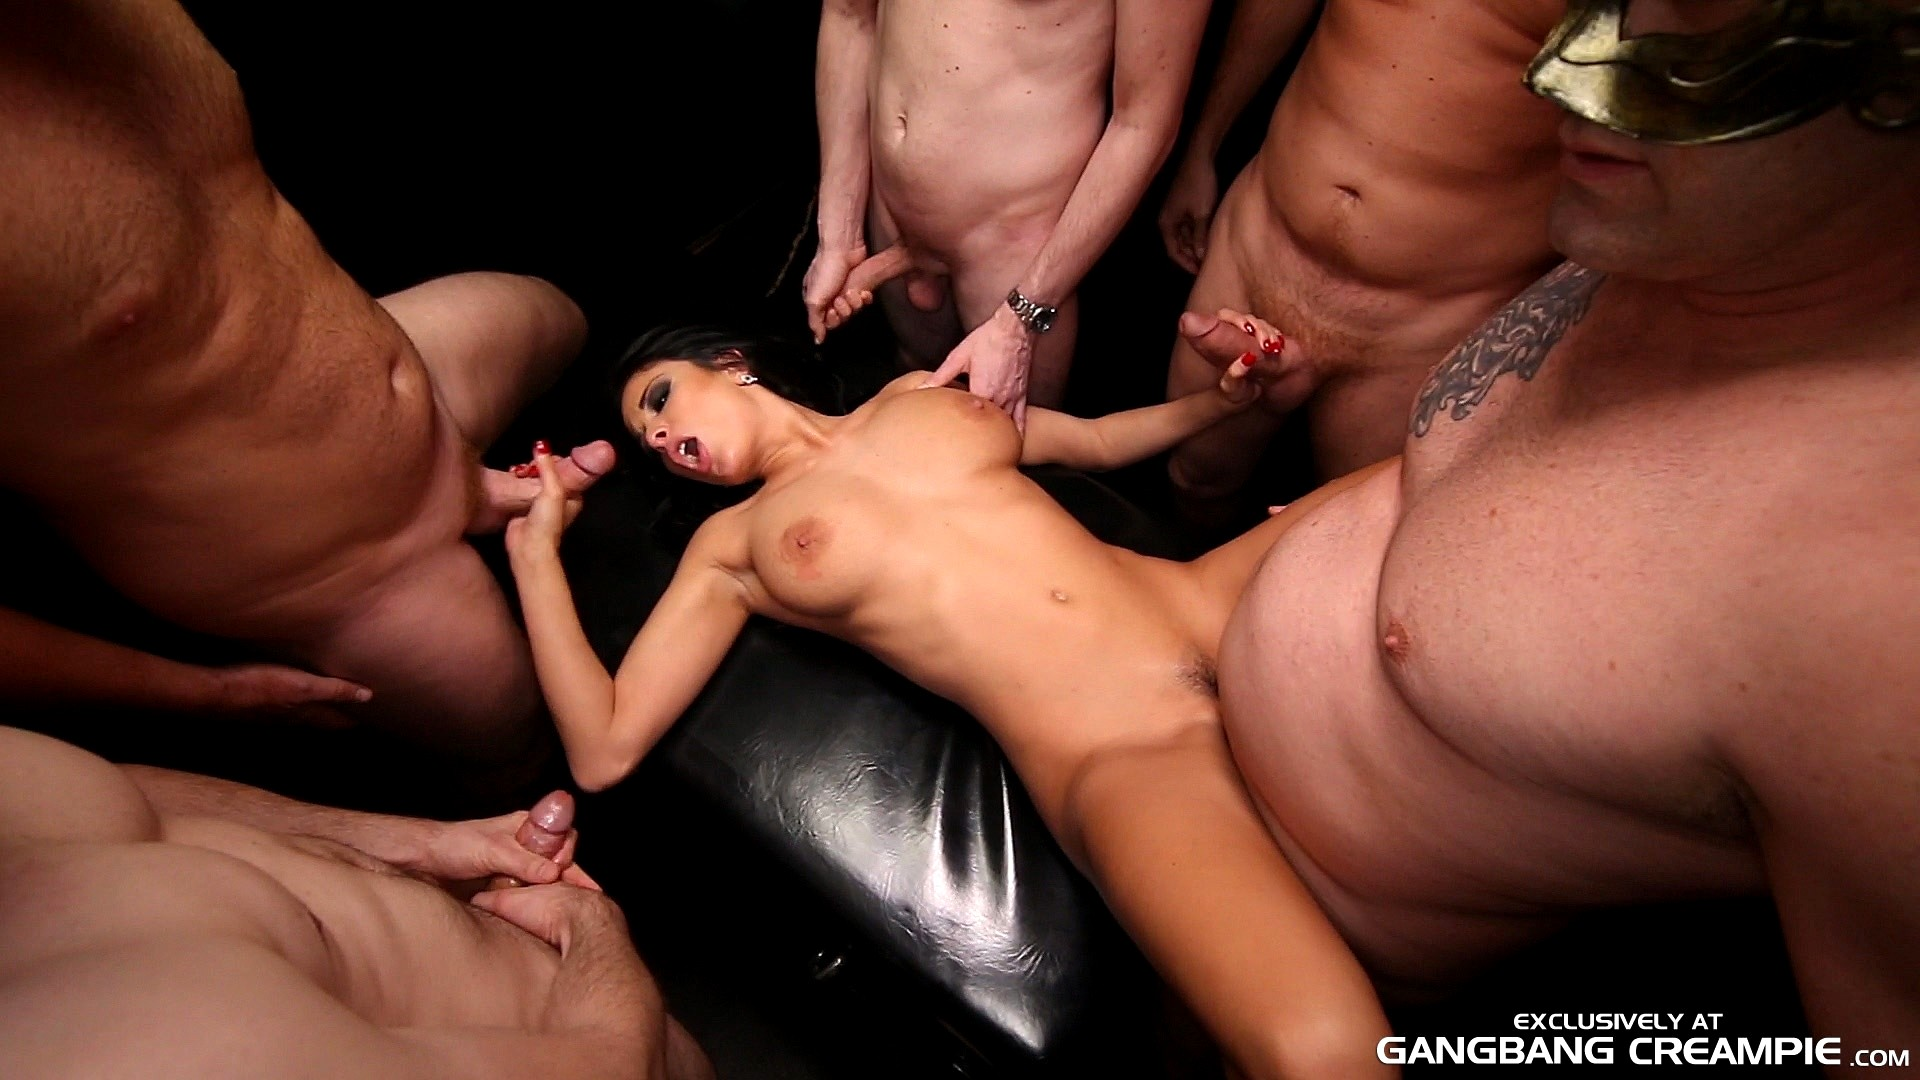 Pussy filled with cum in gang bang, watch closeup of pussy cum filestube